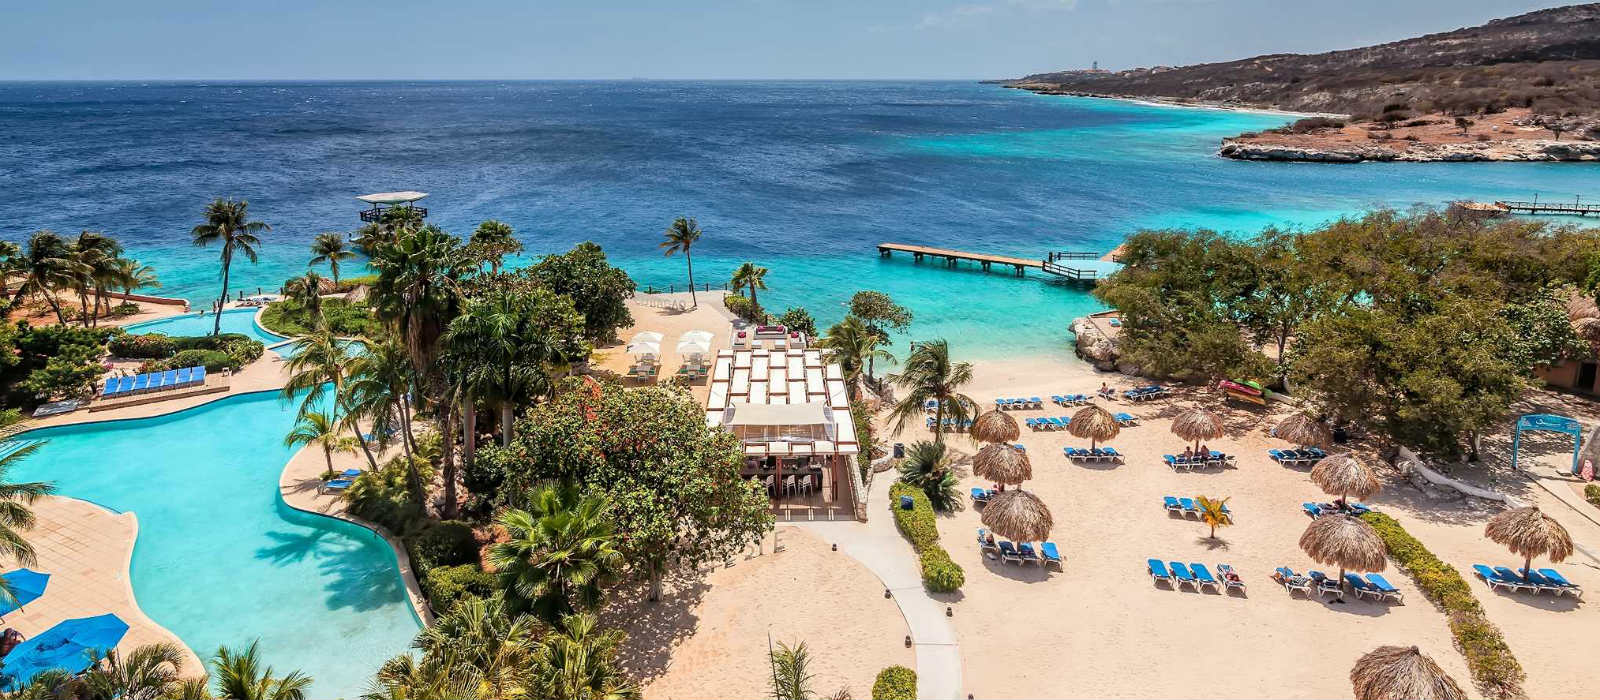 Travel deals in the Caribbean Islands